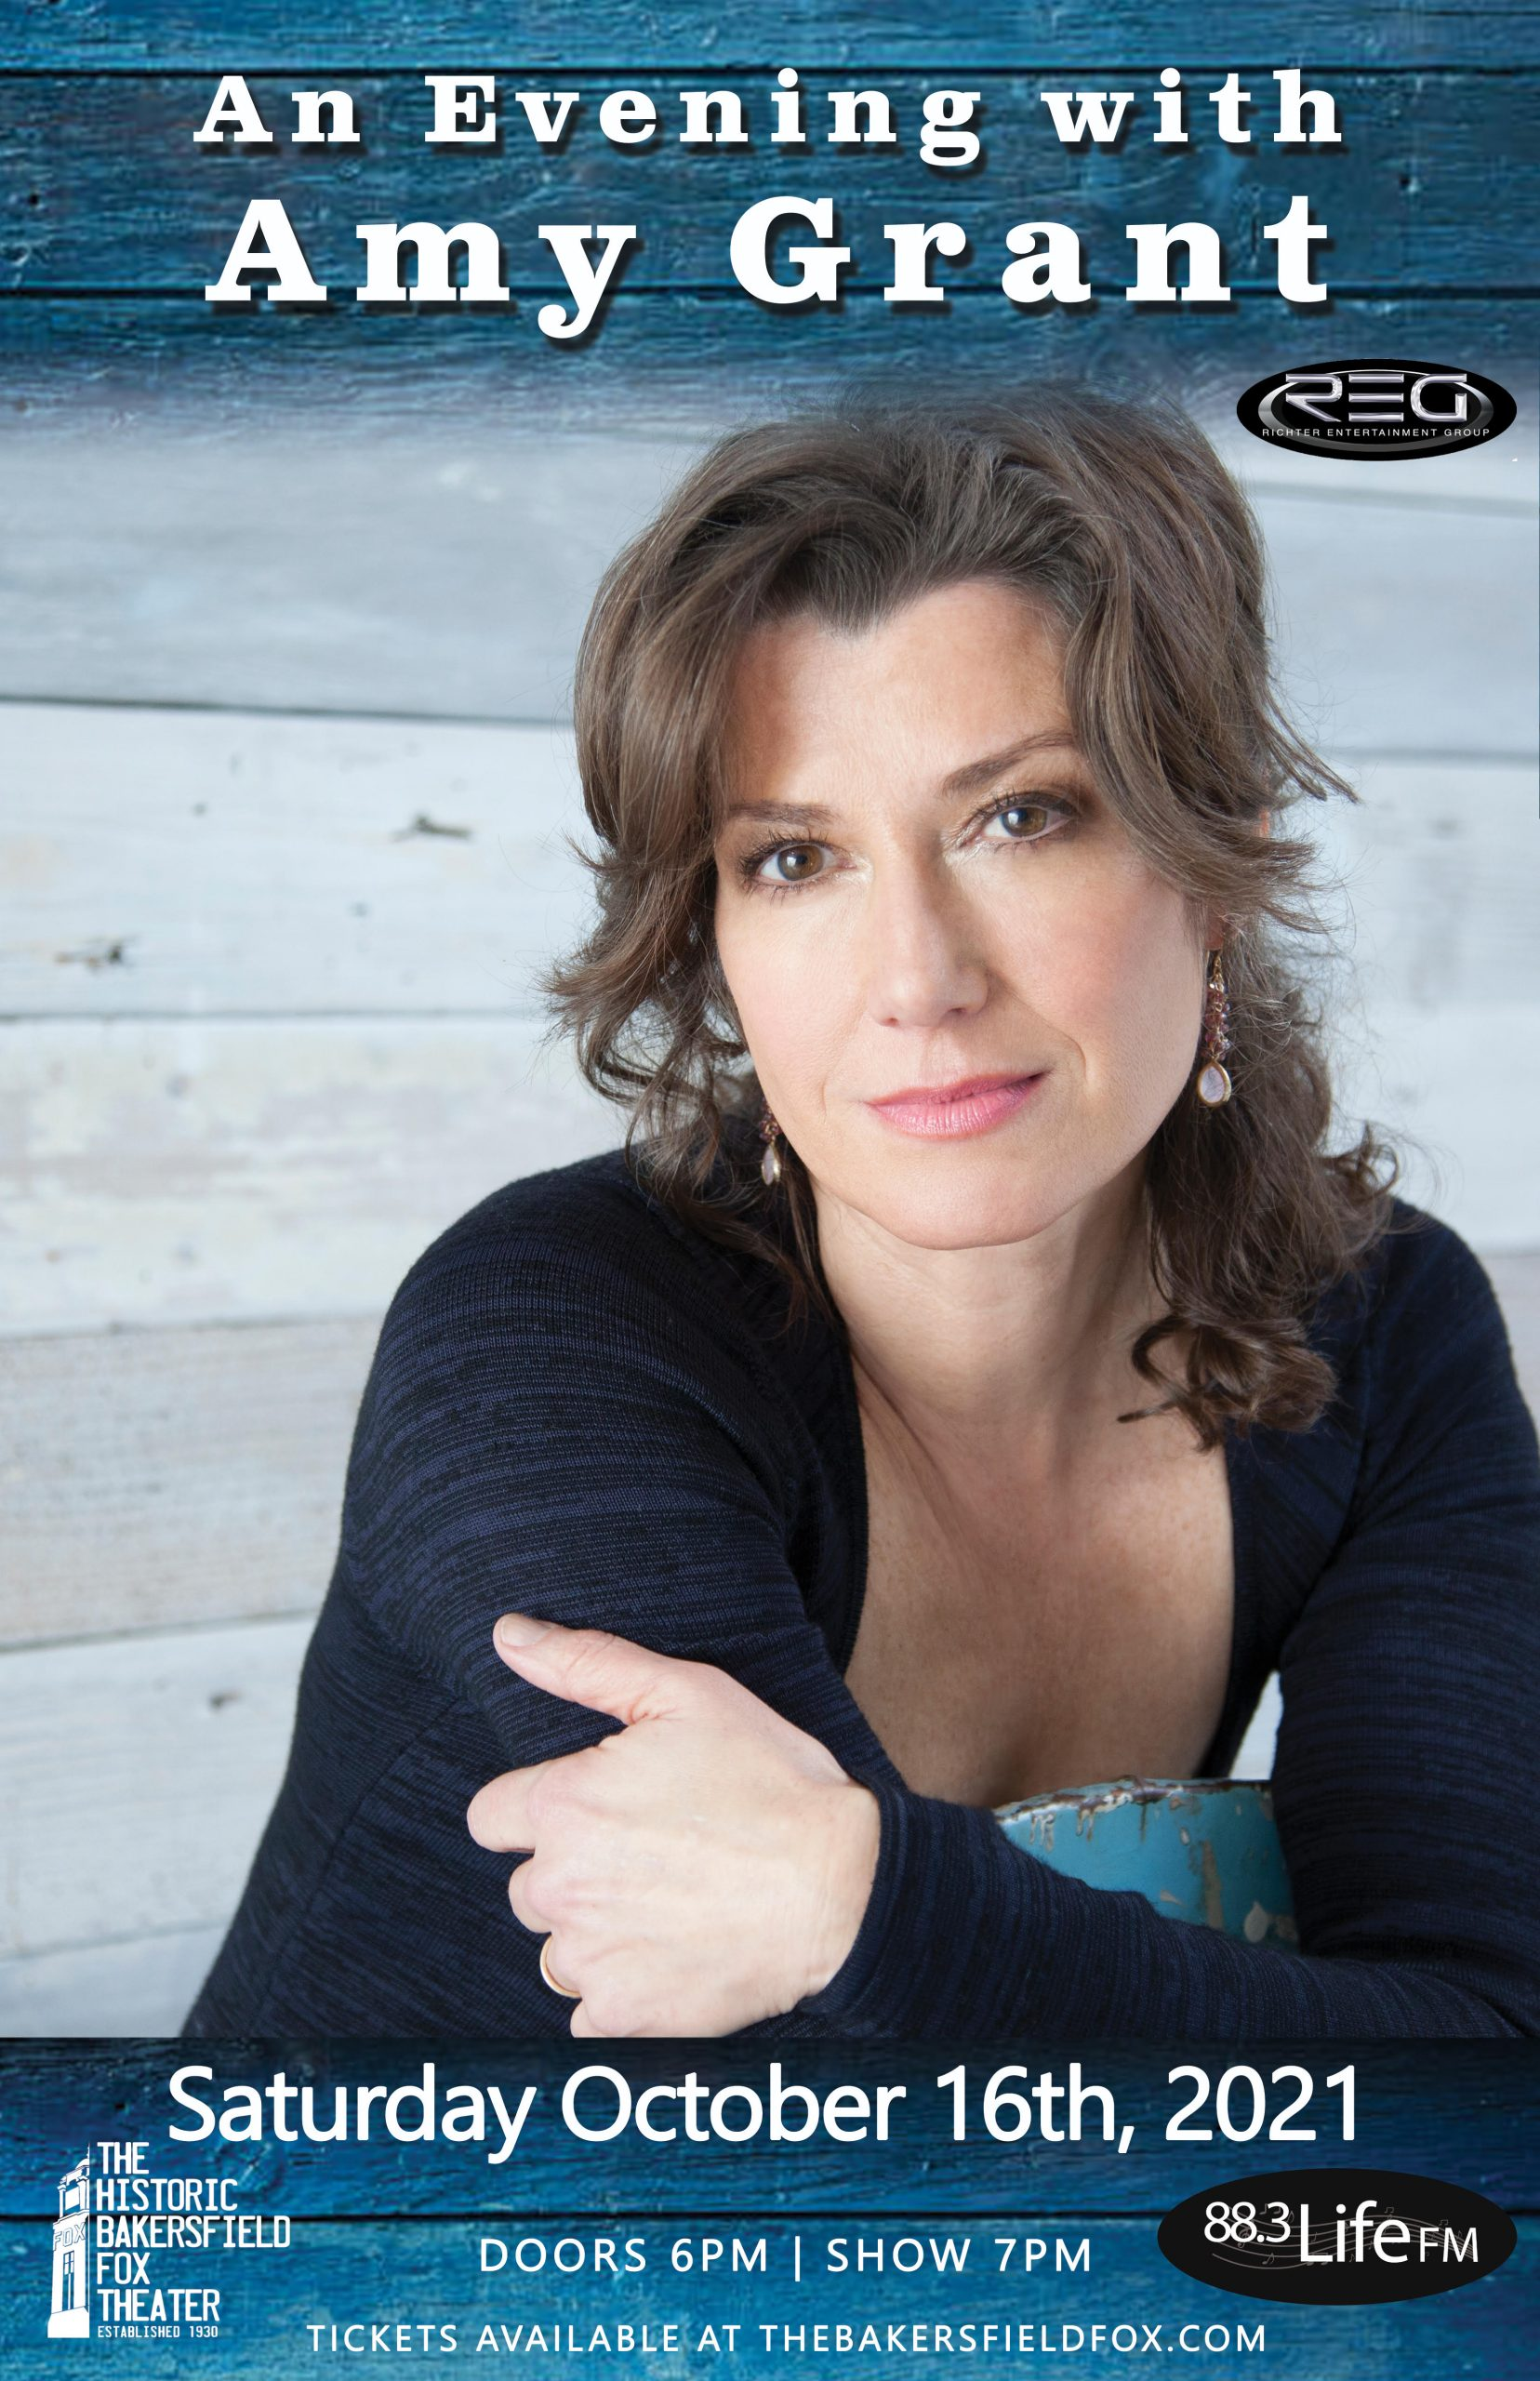 Amy Grant In concert March 22nd at Bakersfield Fox Theater